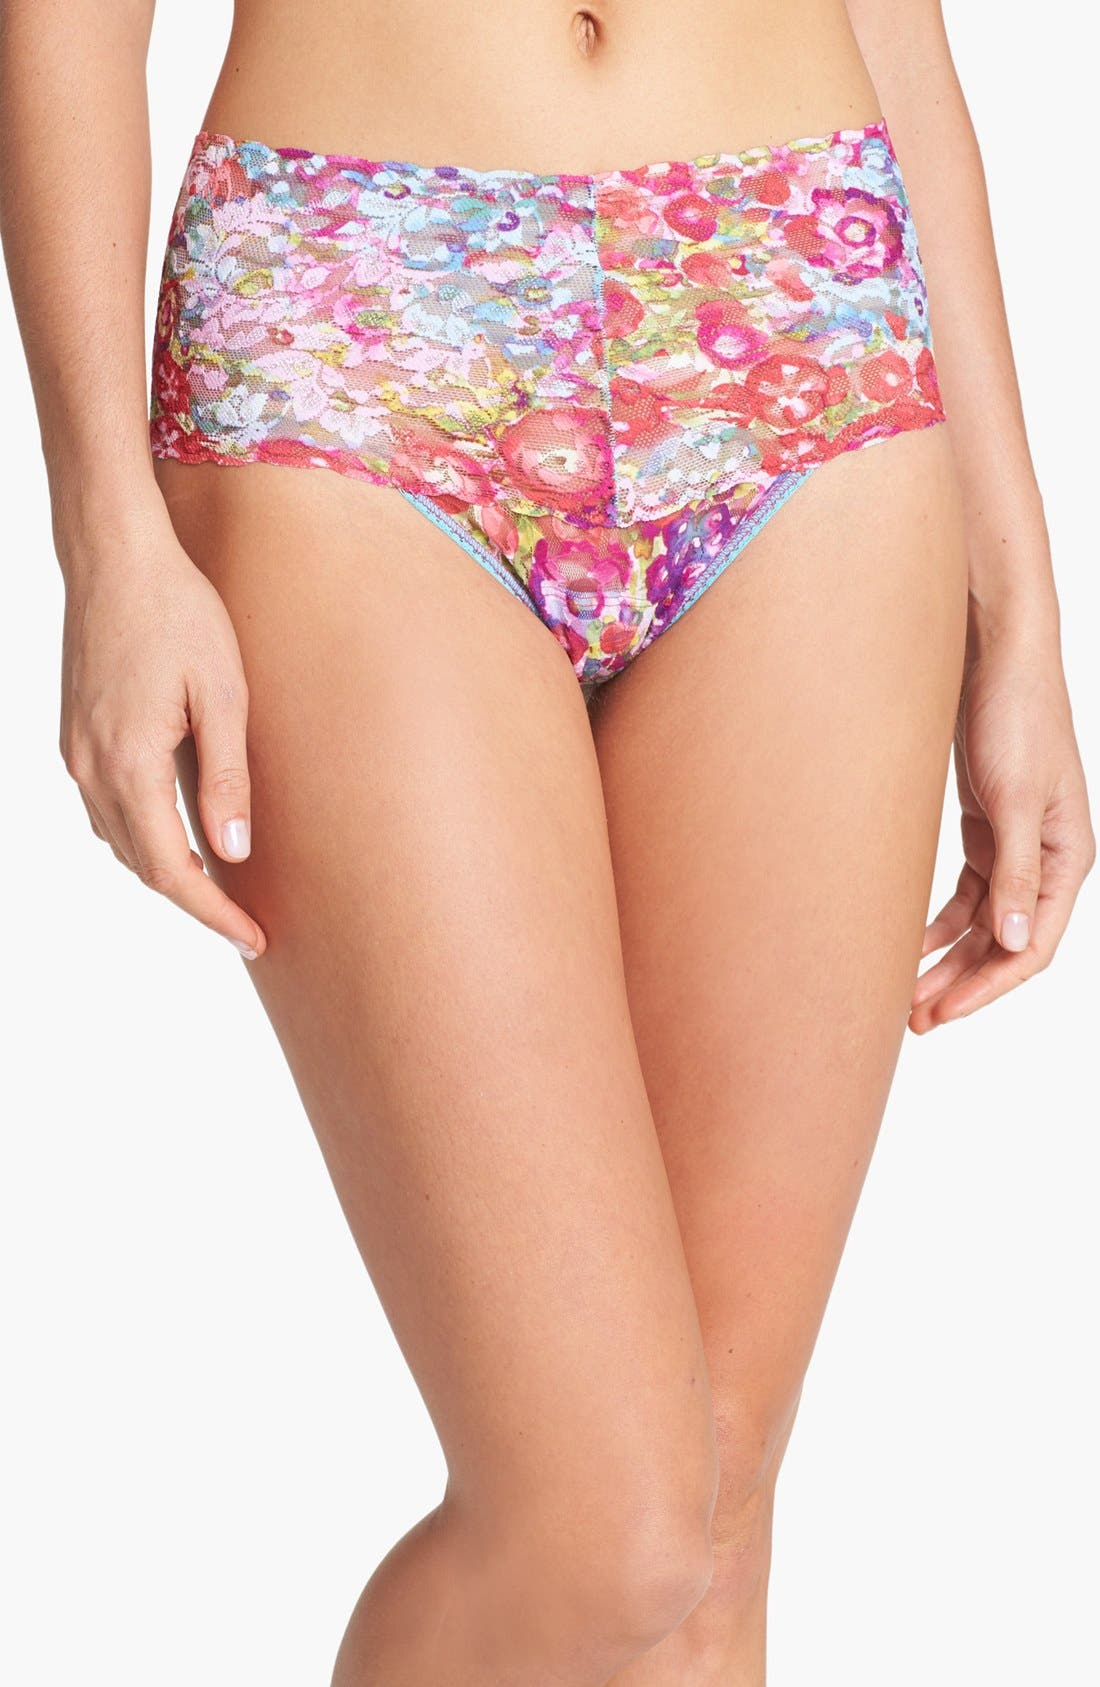 Alternate Image 1 Selected - Hanky Panky 'Millefleur Retro' High Waist Thong